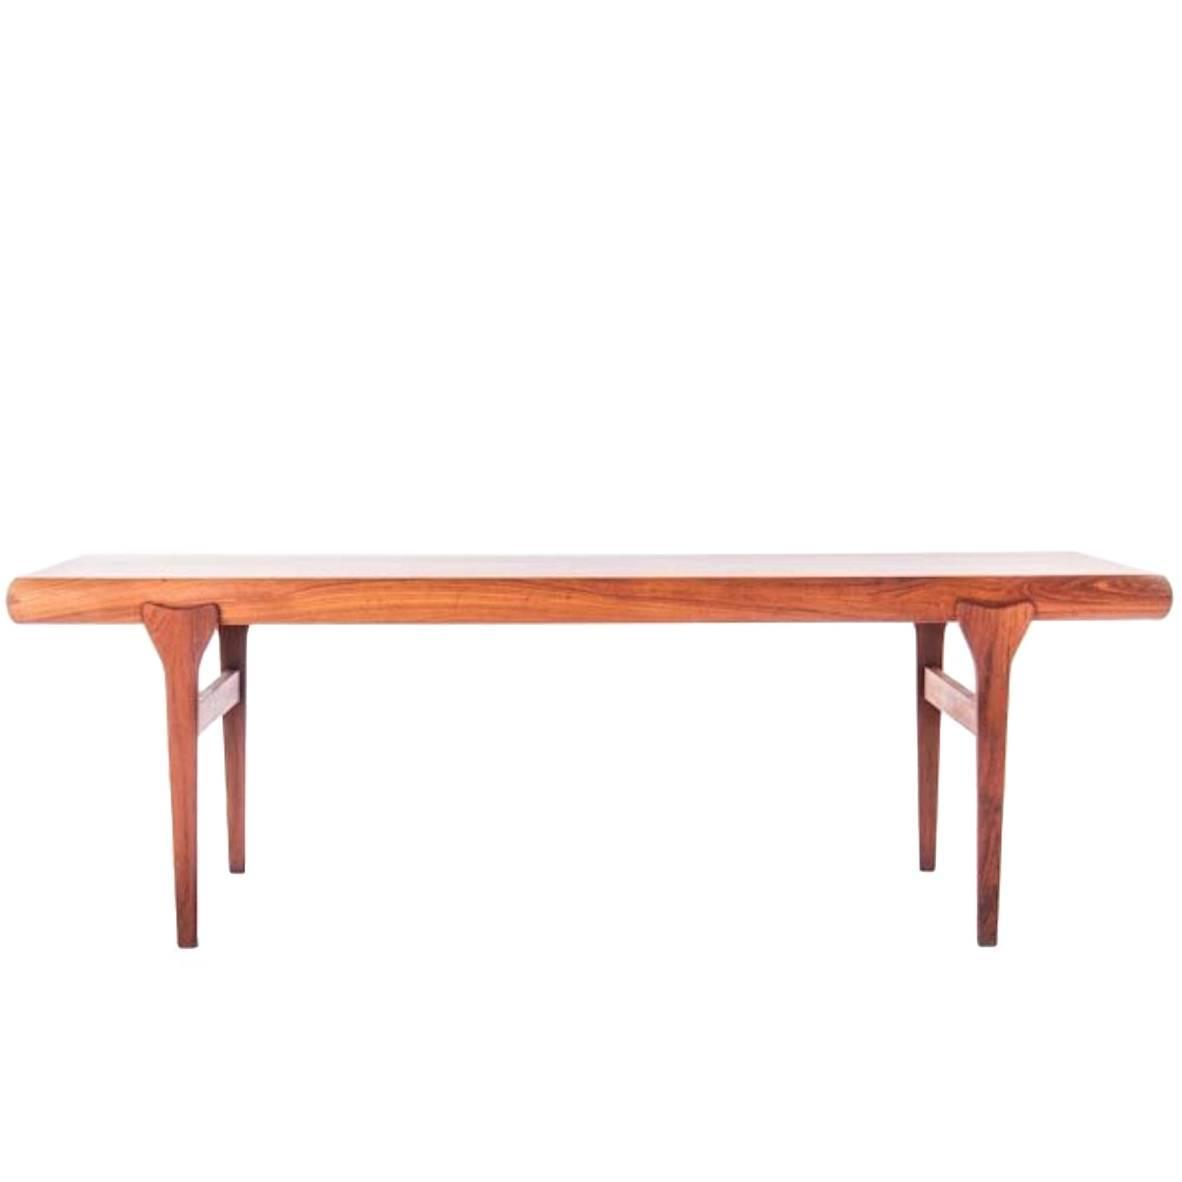 Danish Modern Coffee Table With Retractable Shelves For